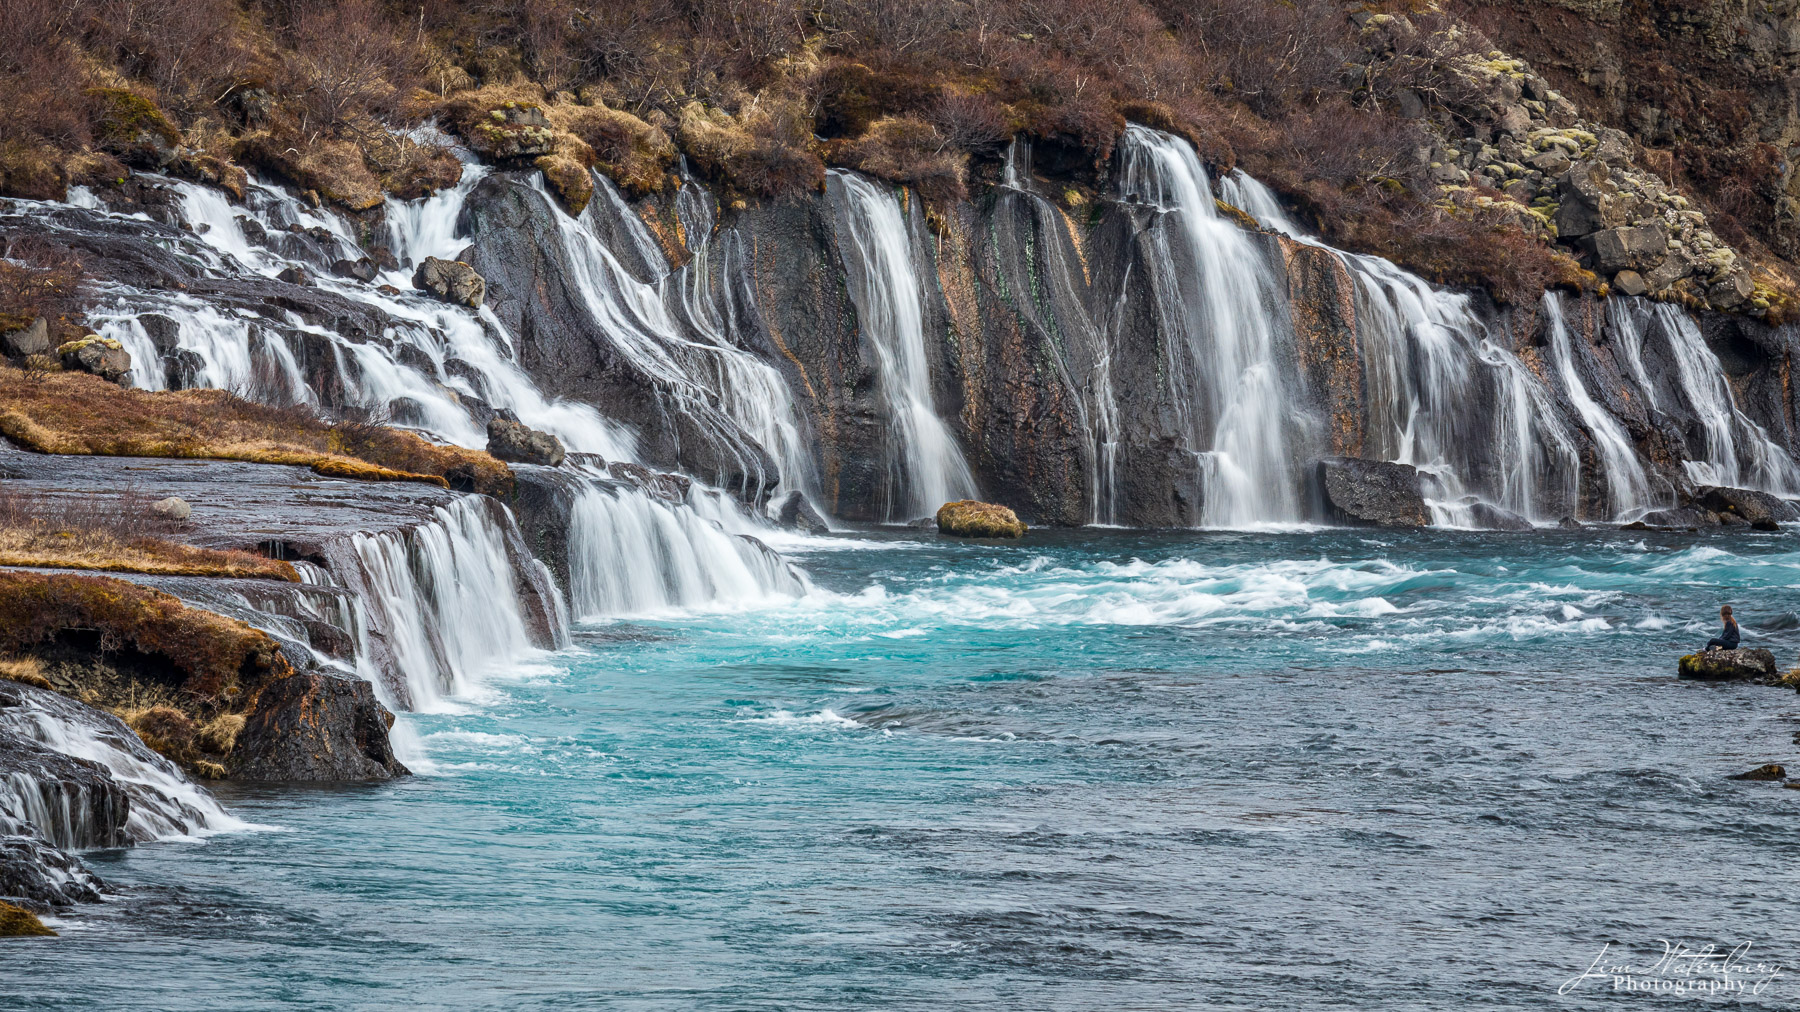 A young girl sits on an outcrop of rock to take in the natural beauty of the Hraunfossar waterfalls, as glacial melt waters cascade...